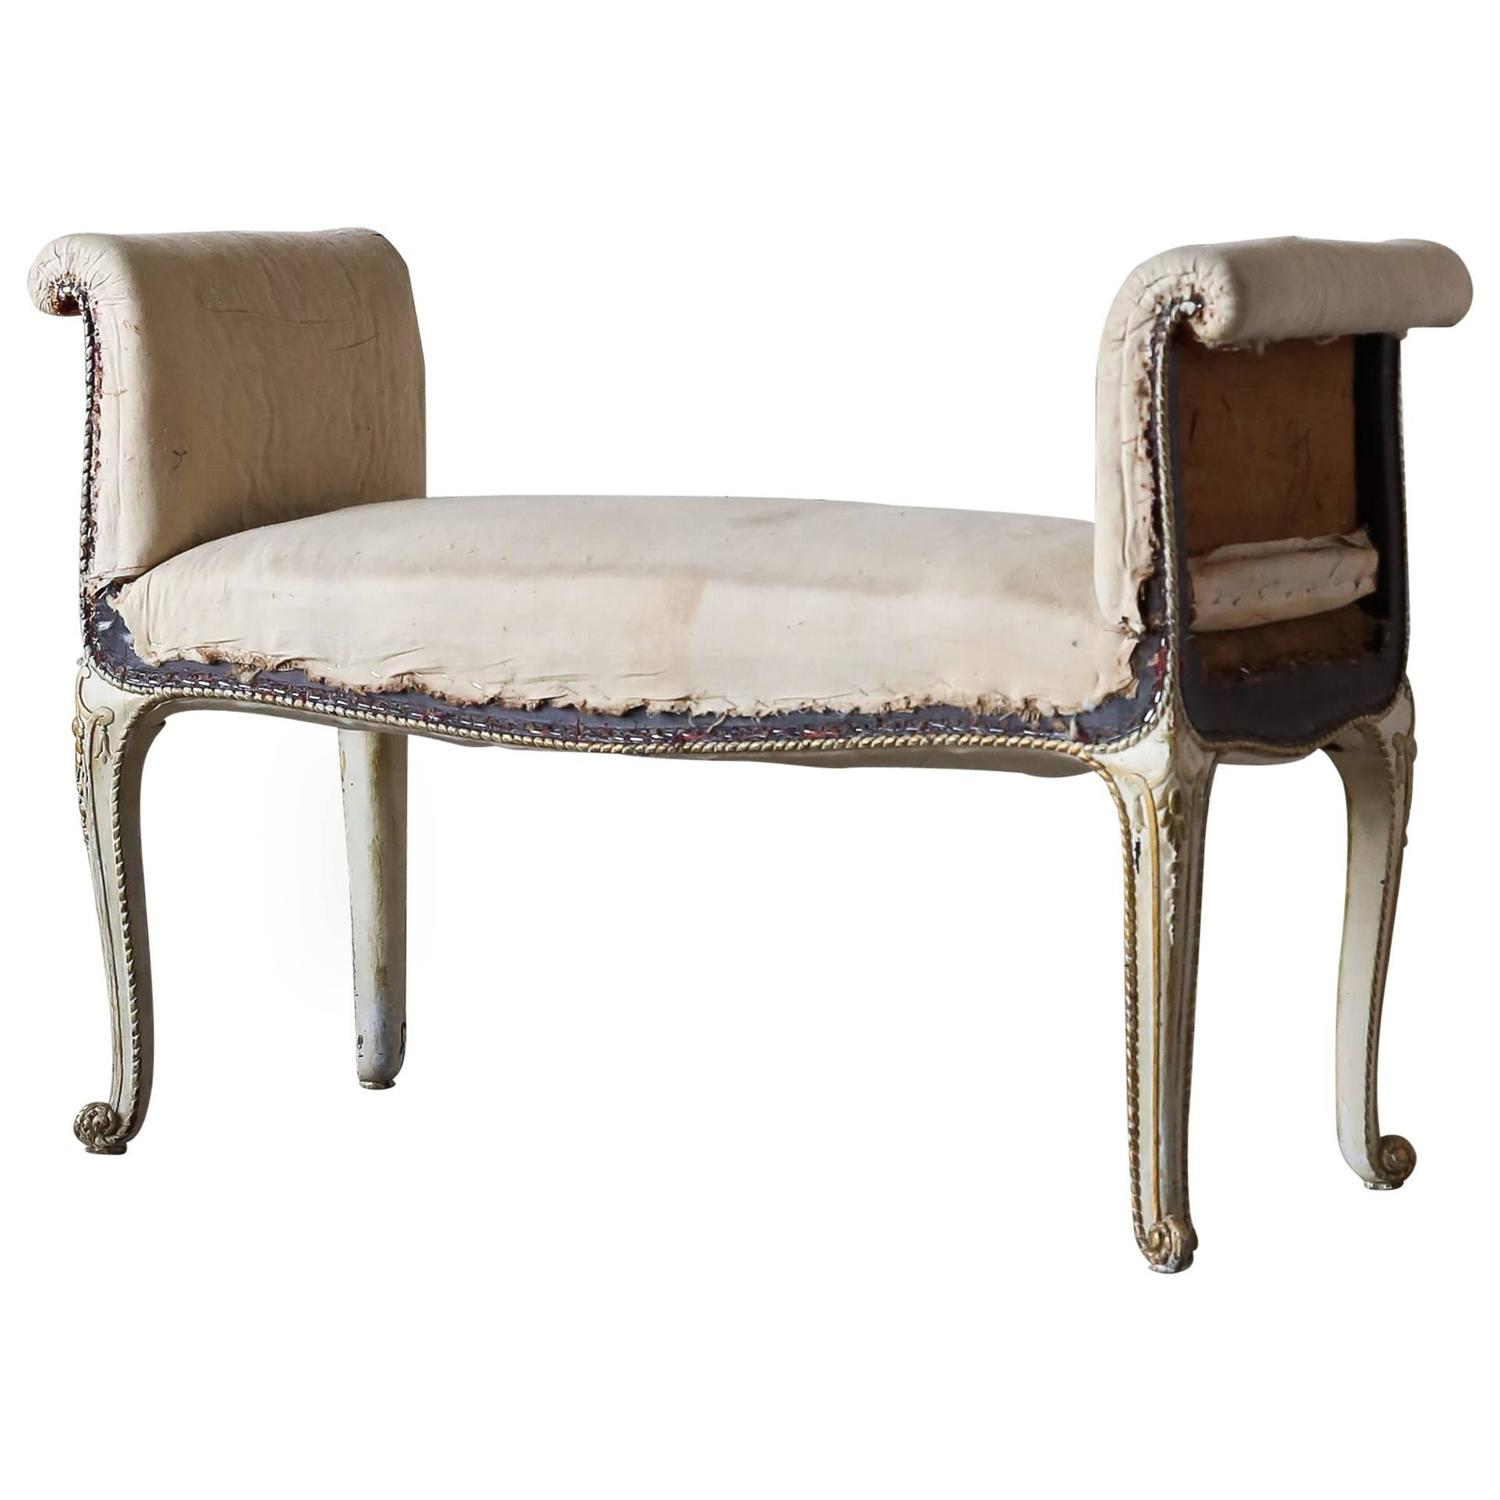 Antique Louis IV Style French Banquette For Sale at 1stdibs